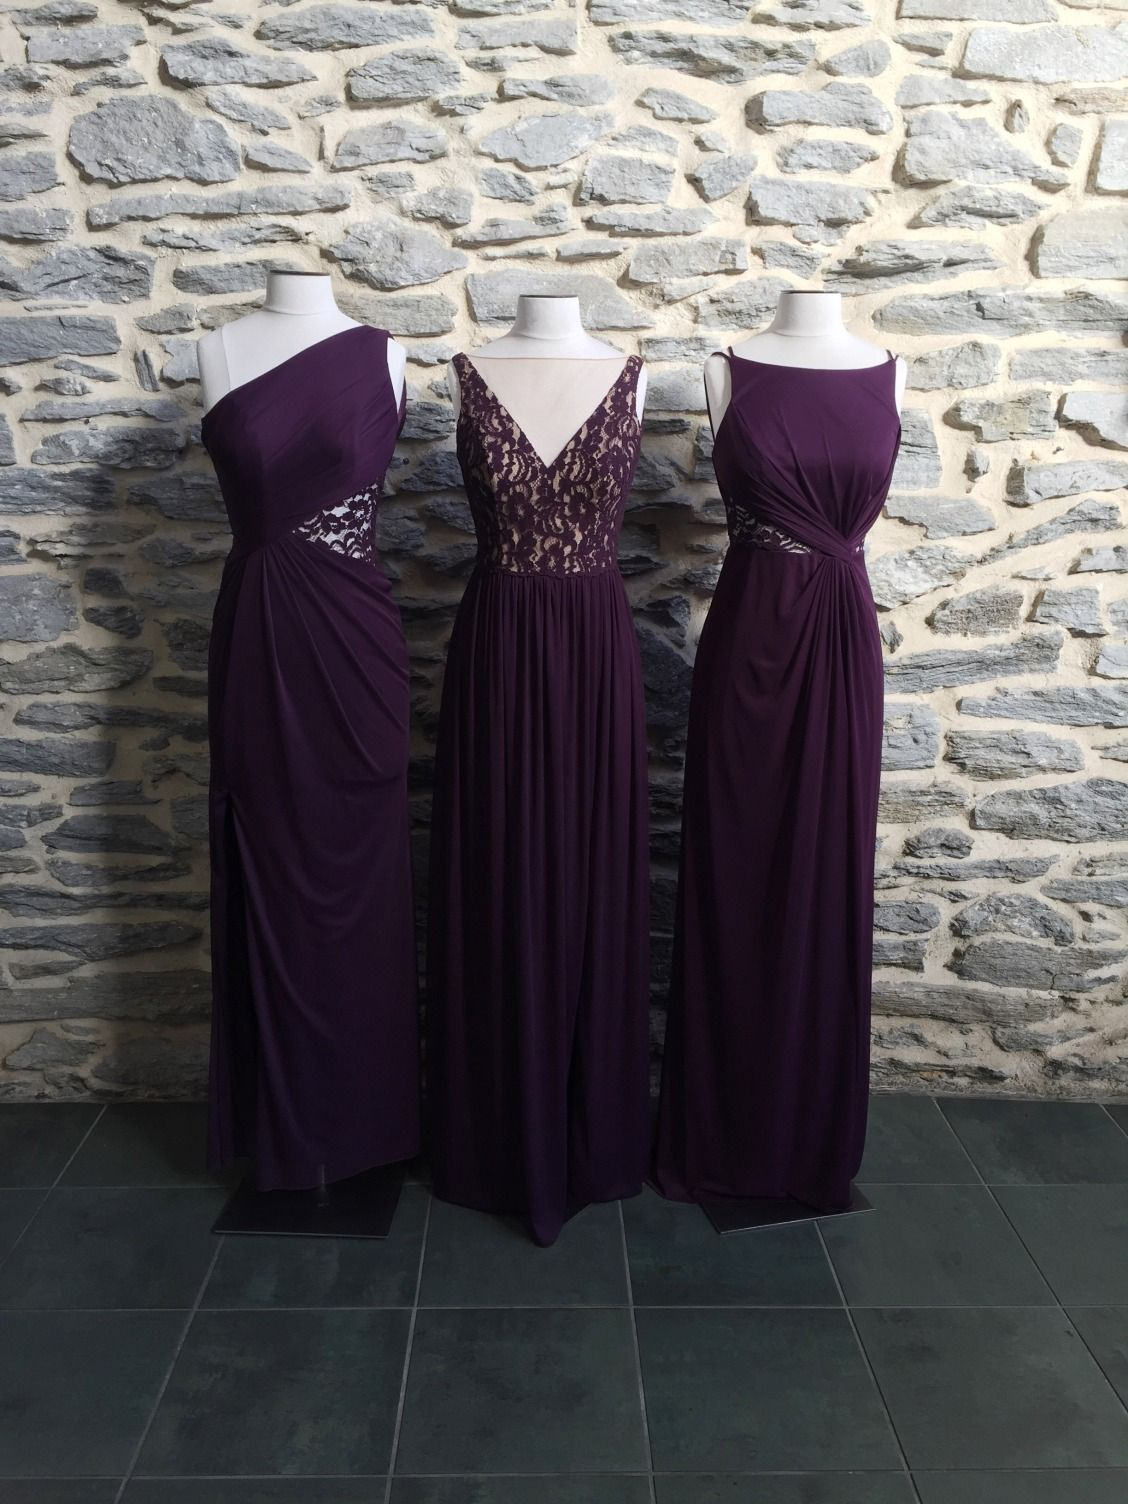 Pretty in plum these new bridesmaid dresses available at davids these new bridesmaid dresses available at davids bridal will be beautiful down ombrellifo Image collections